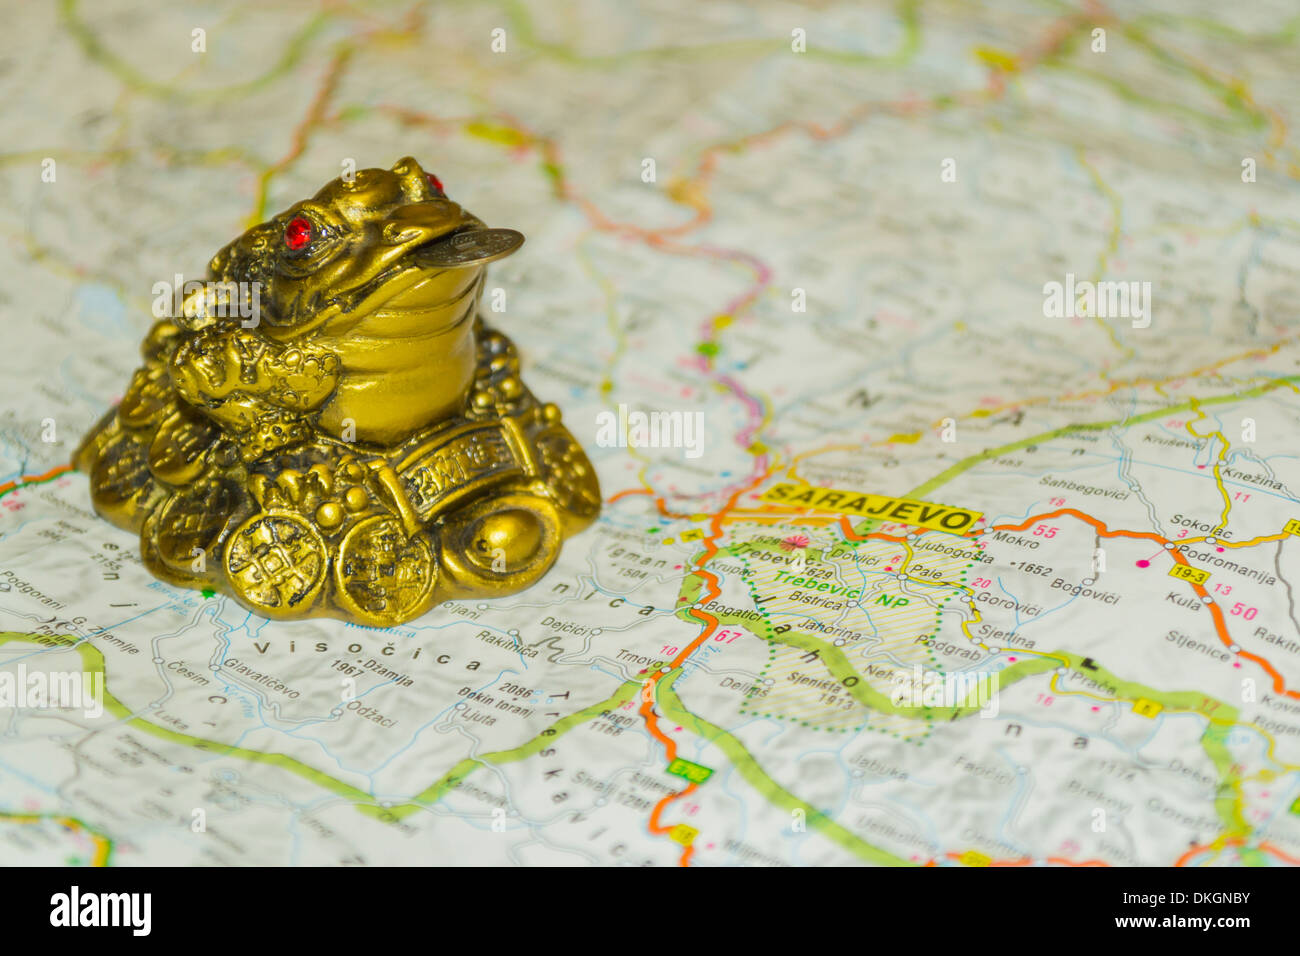 Money toad on map pointing to Sarajevo, capital of Bosnia ... on vienna on map, serbia on map, skopje on map, belgrade on map, belfast on map, stockholm on map, budapest on map, warsaw on map, prague on map, tallinn on map, sofia on map, rome on map, dardanelles on map, western front on map, oslo on map, constantinople on map, zagreb on map, moscow on map, bosnia on map, london on map,